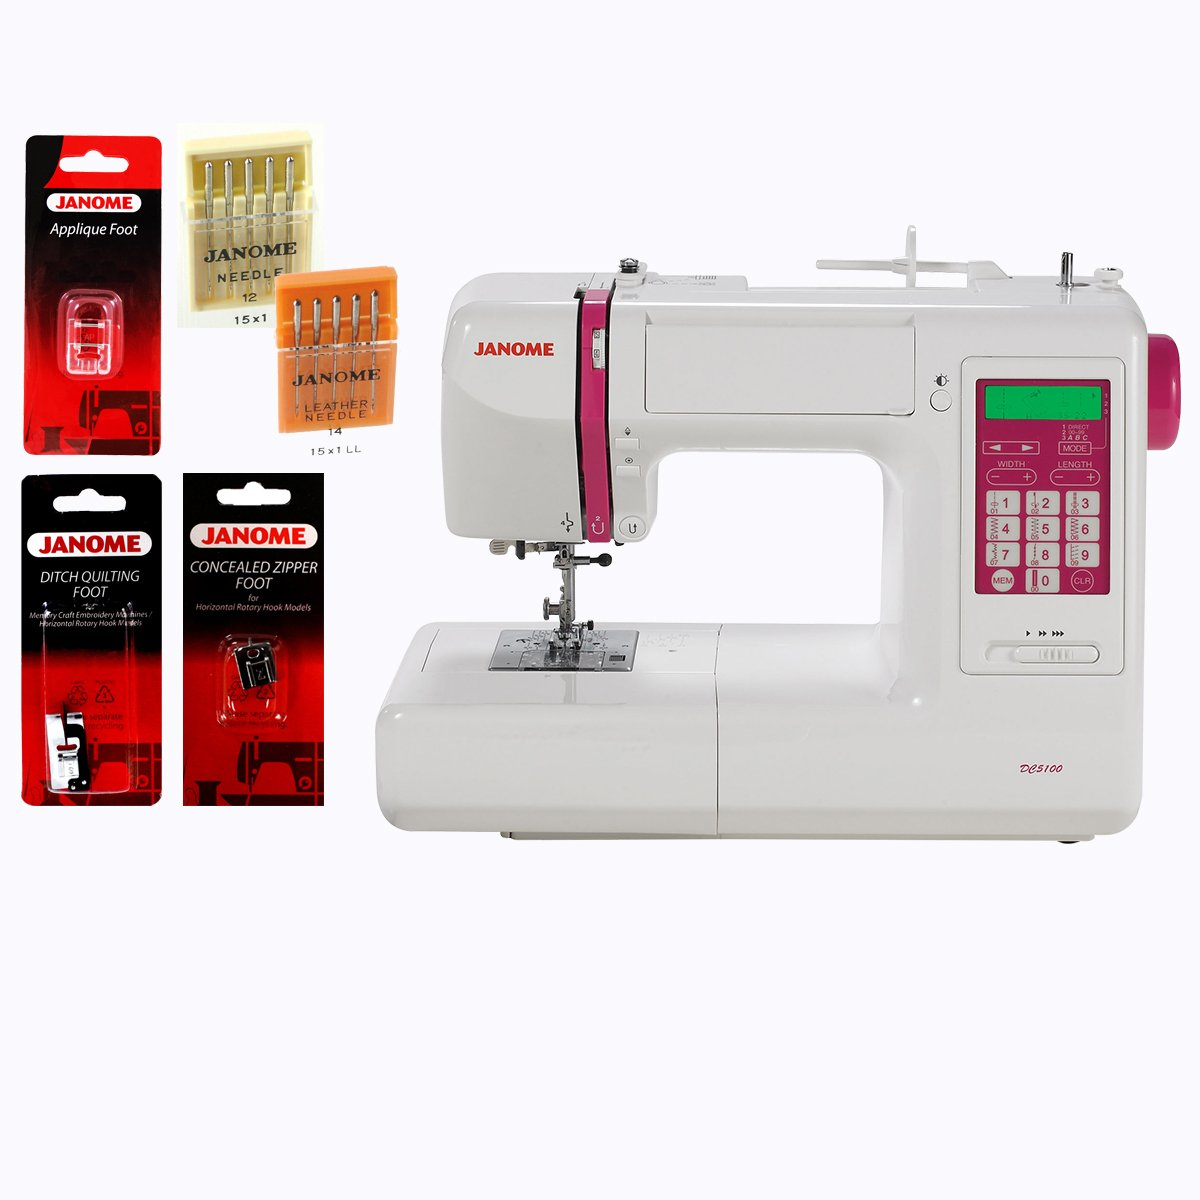 Top 10 Best Computerized Sewing Machines Reviews in 2020 2